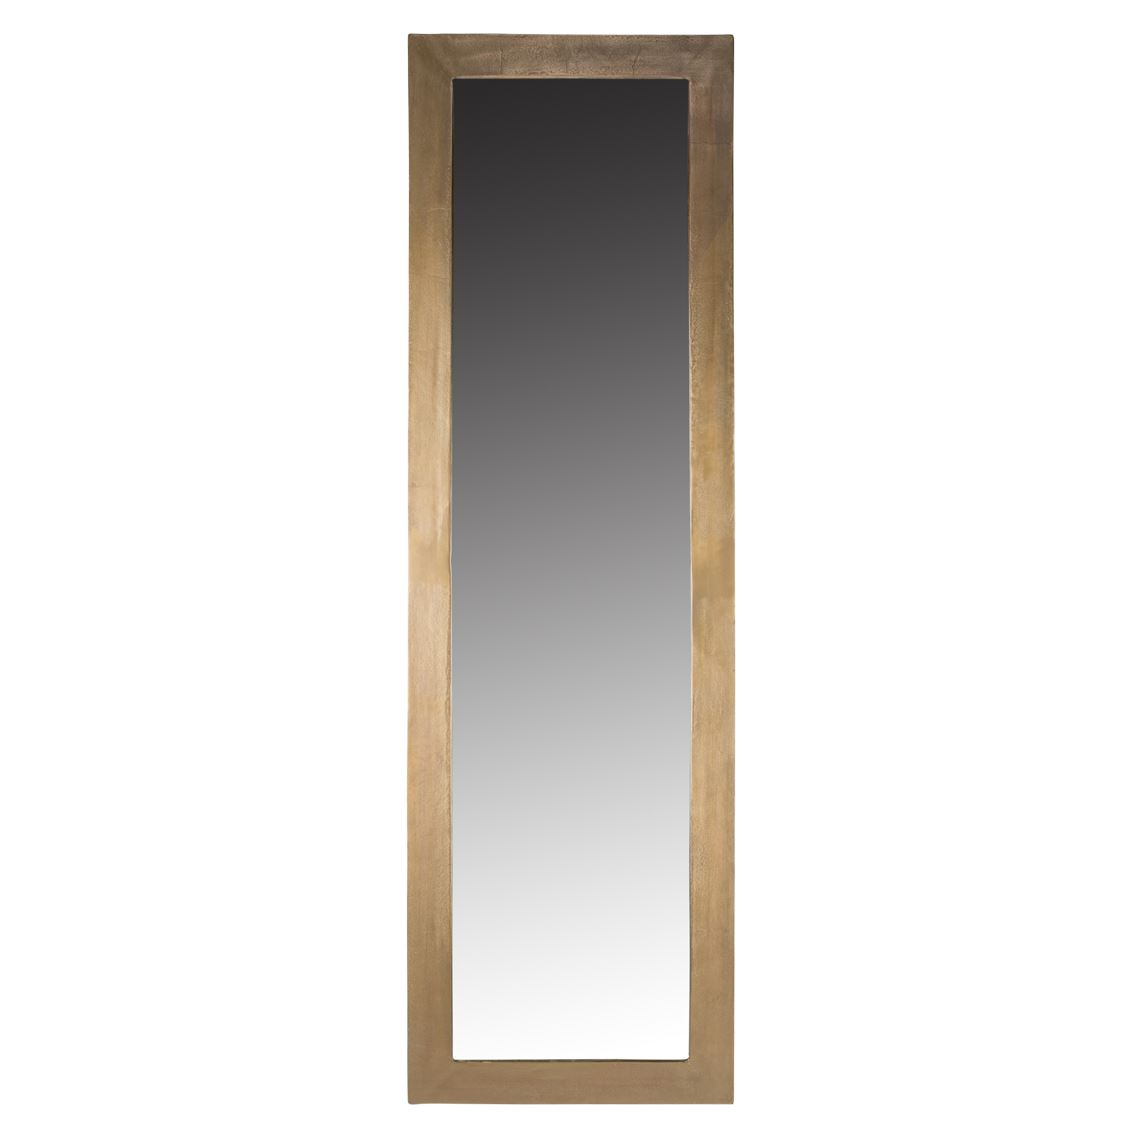 Delaford Floor Mirror, Colour Size W 58cm x D 3cm x H 190cm in Antique Brass Mdf/Brass Antique Aluminium/Polished Mirror Glass Freedom by Freedom, a Mirrors for sale on Style Sourcebook